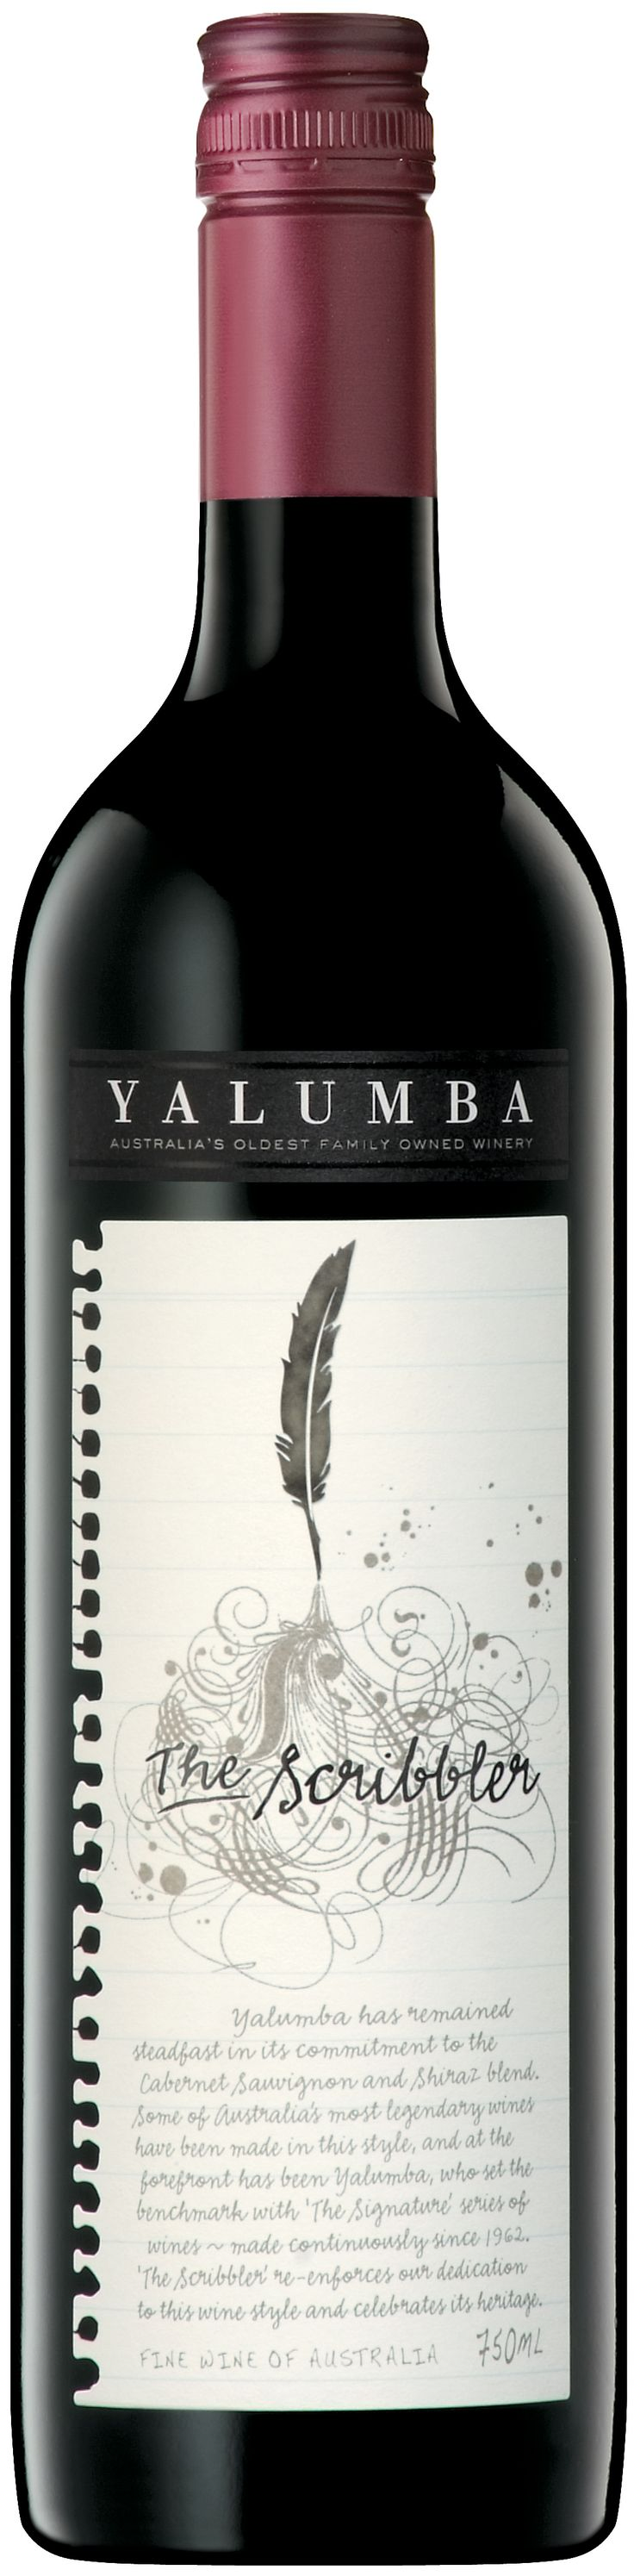 Yalumba - The Scribbler package design. Love the ripped out page treatment.